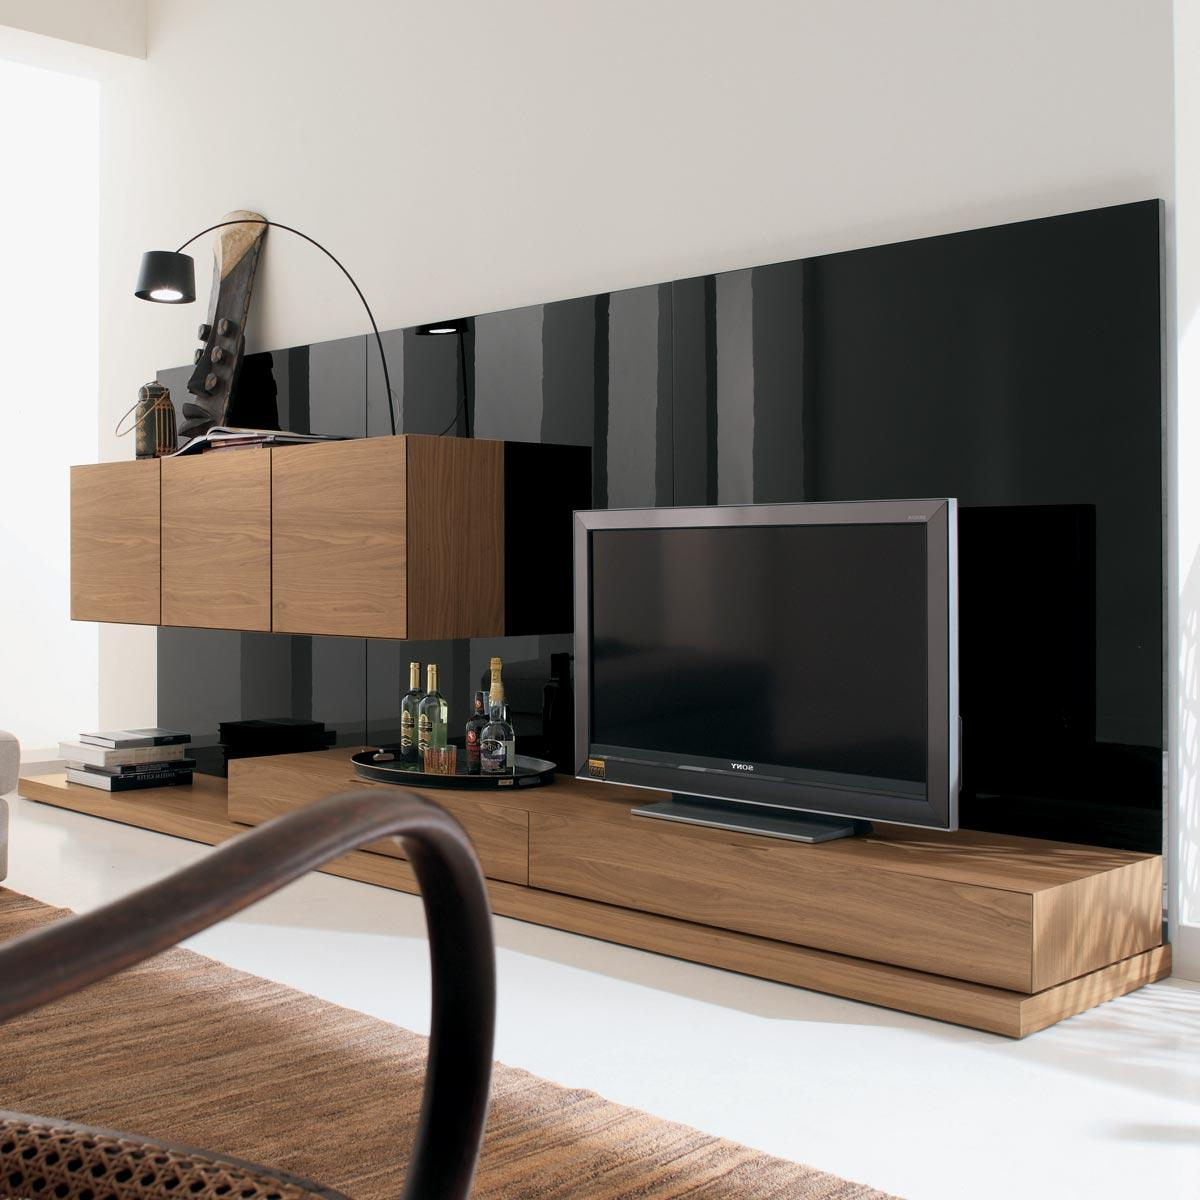 Famous Wooden Tv Stands With Glass Door Tv Stand Also Gray Wall You Can Inside Contemporary Wood Tv Stands (Gallery 16 of 20)